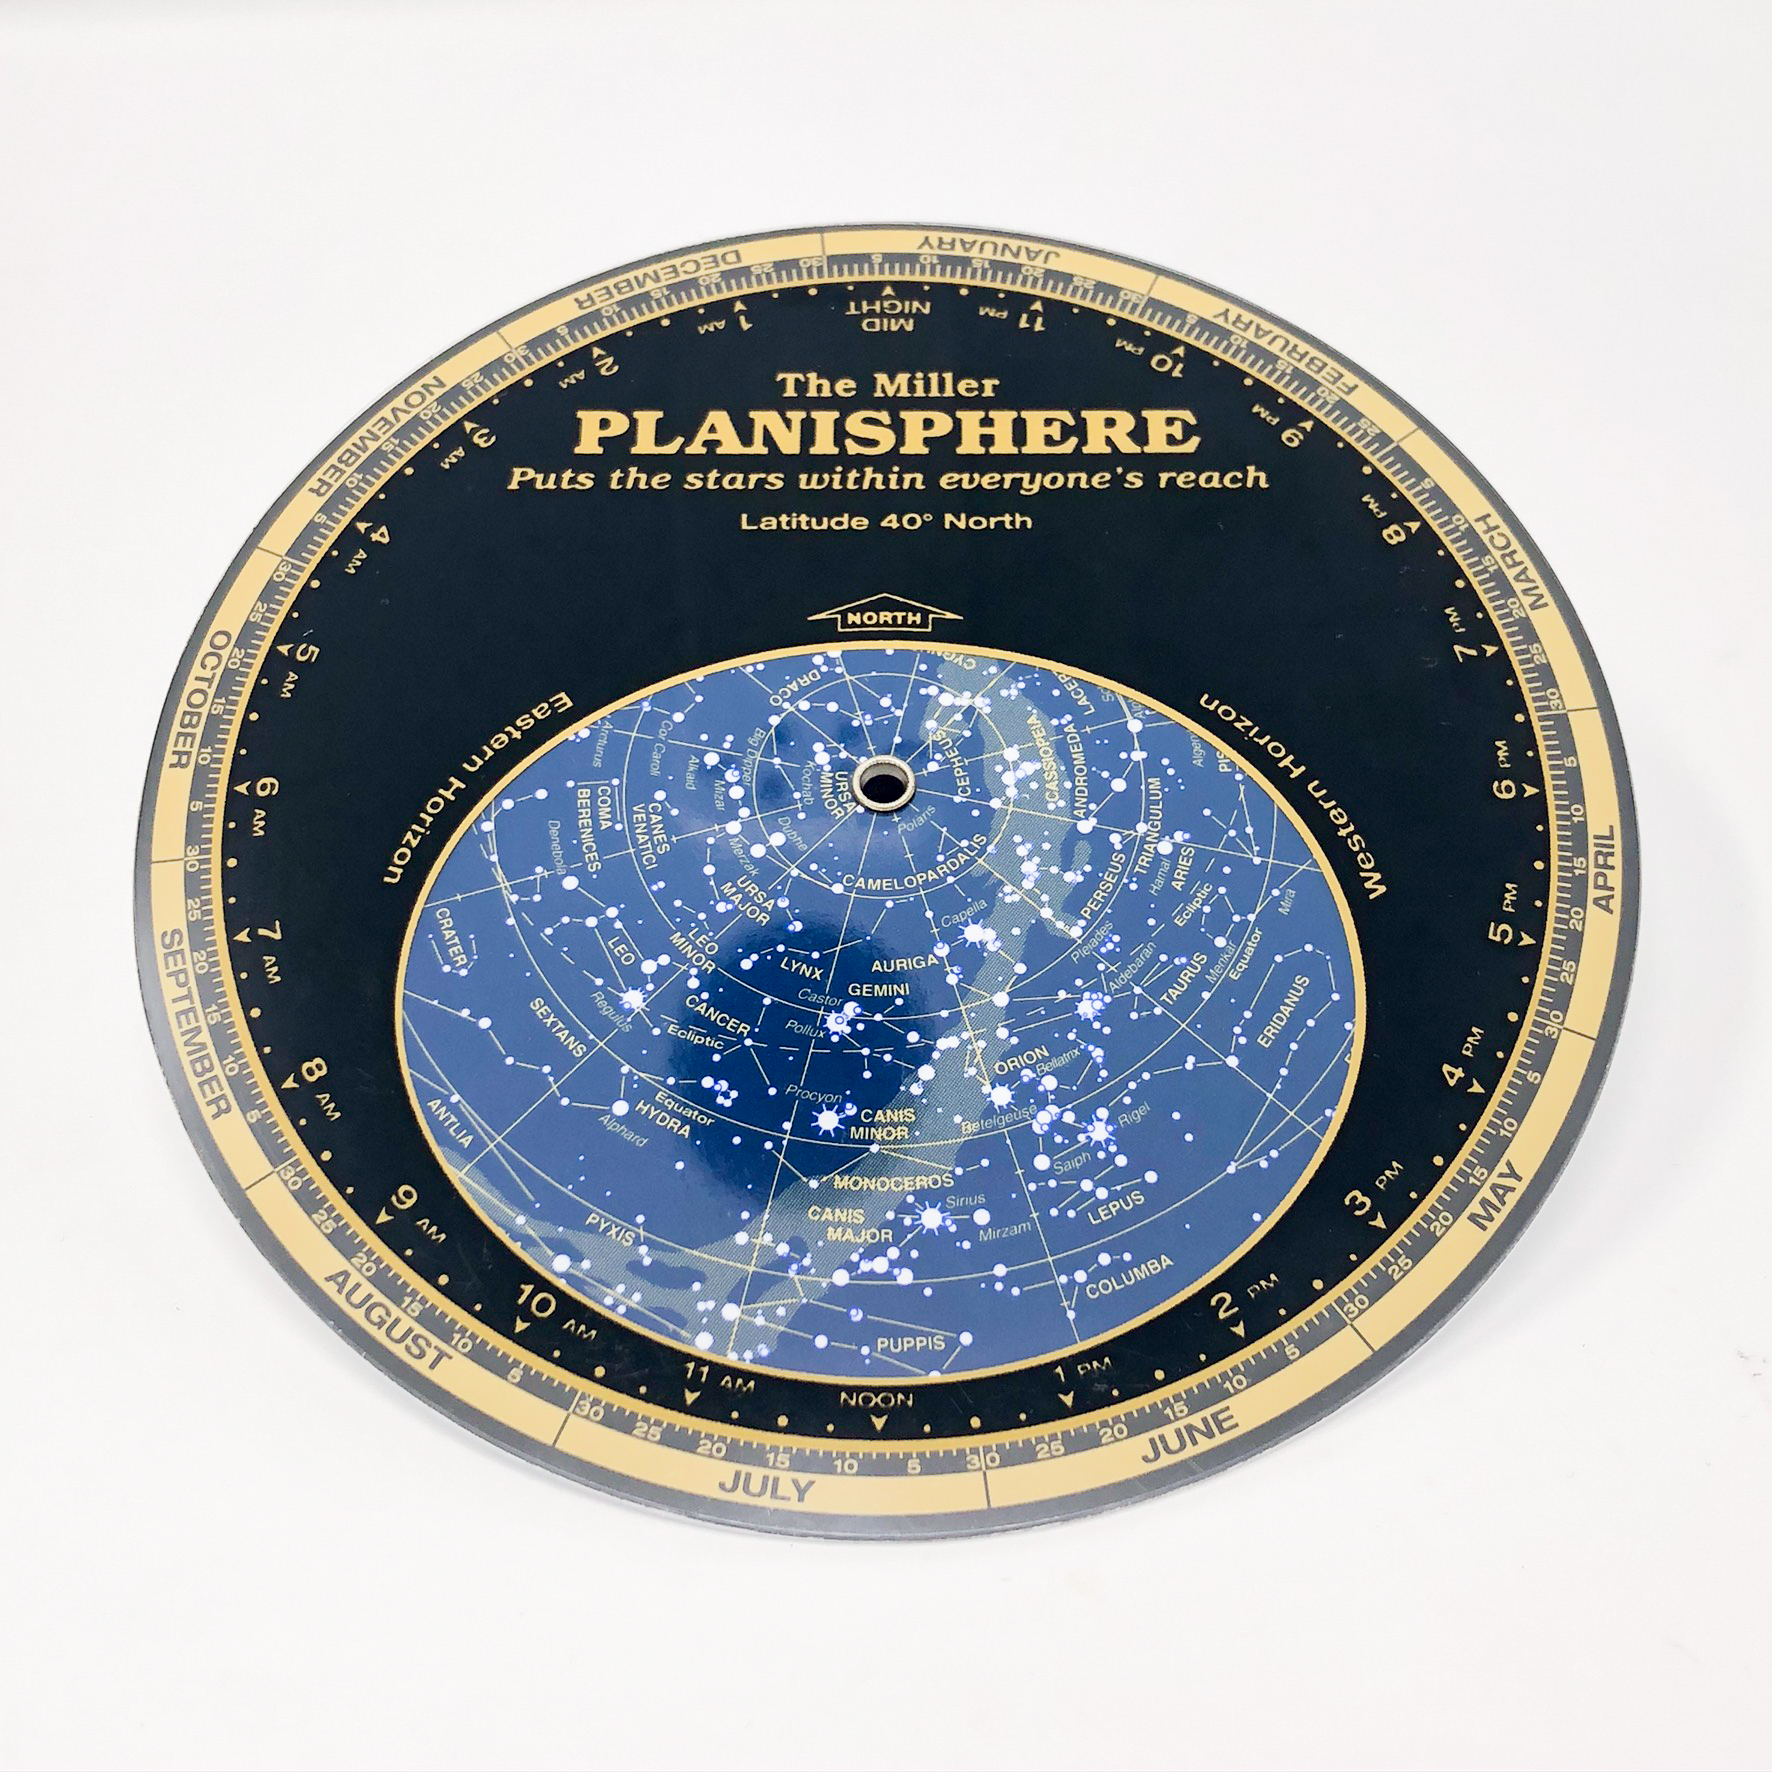 The MIller Planisphere, a tool for viewing what the night sky looks like on any day of the year